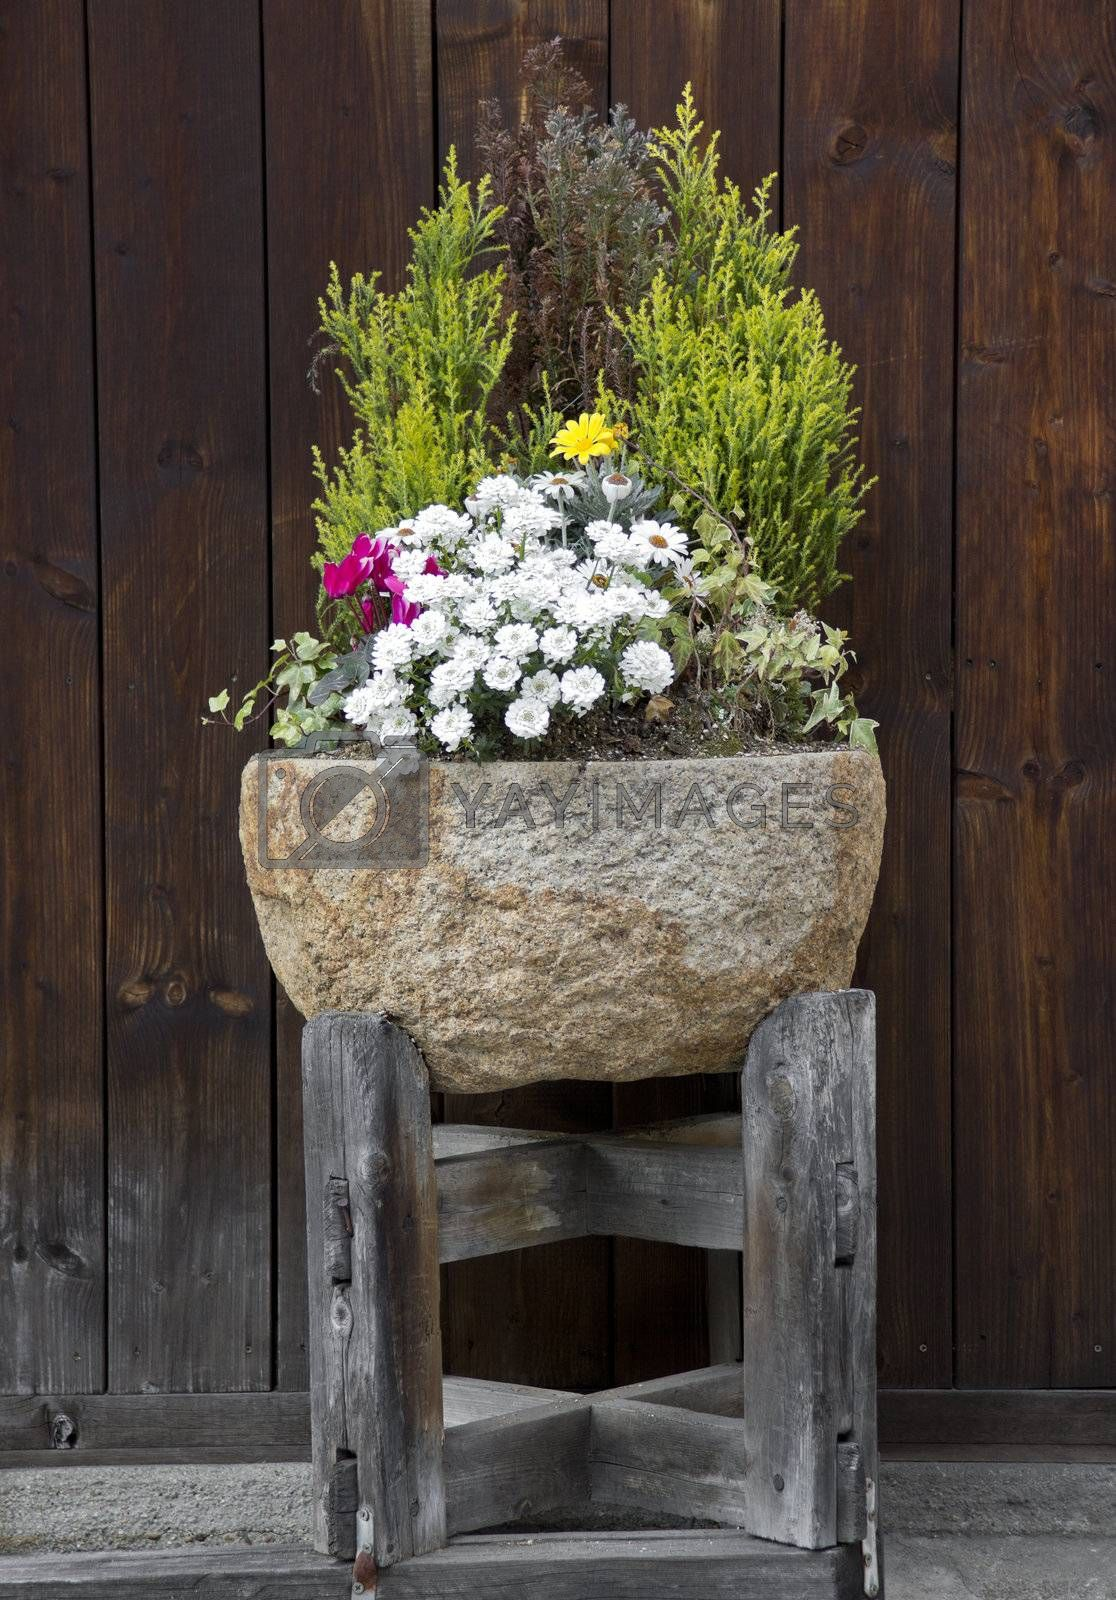 Stone flower pot with nice arrangement of plants and flowers